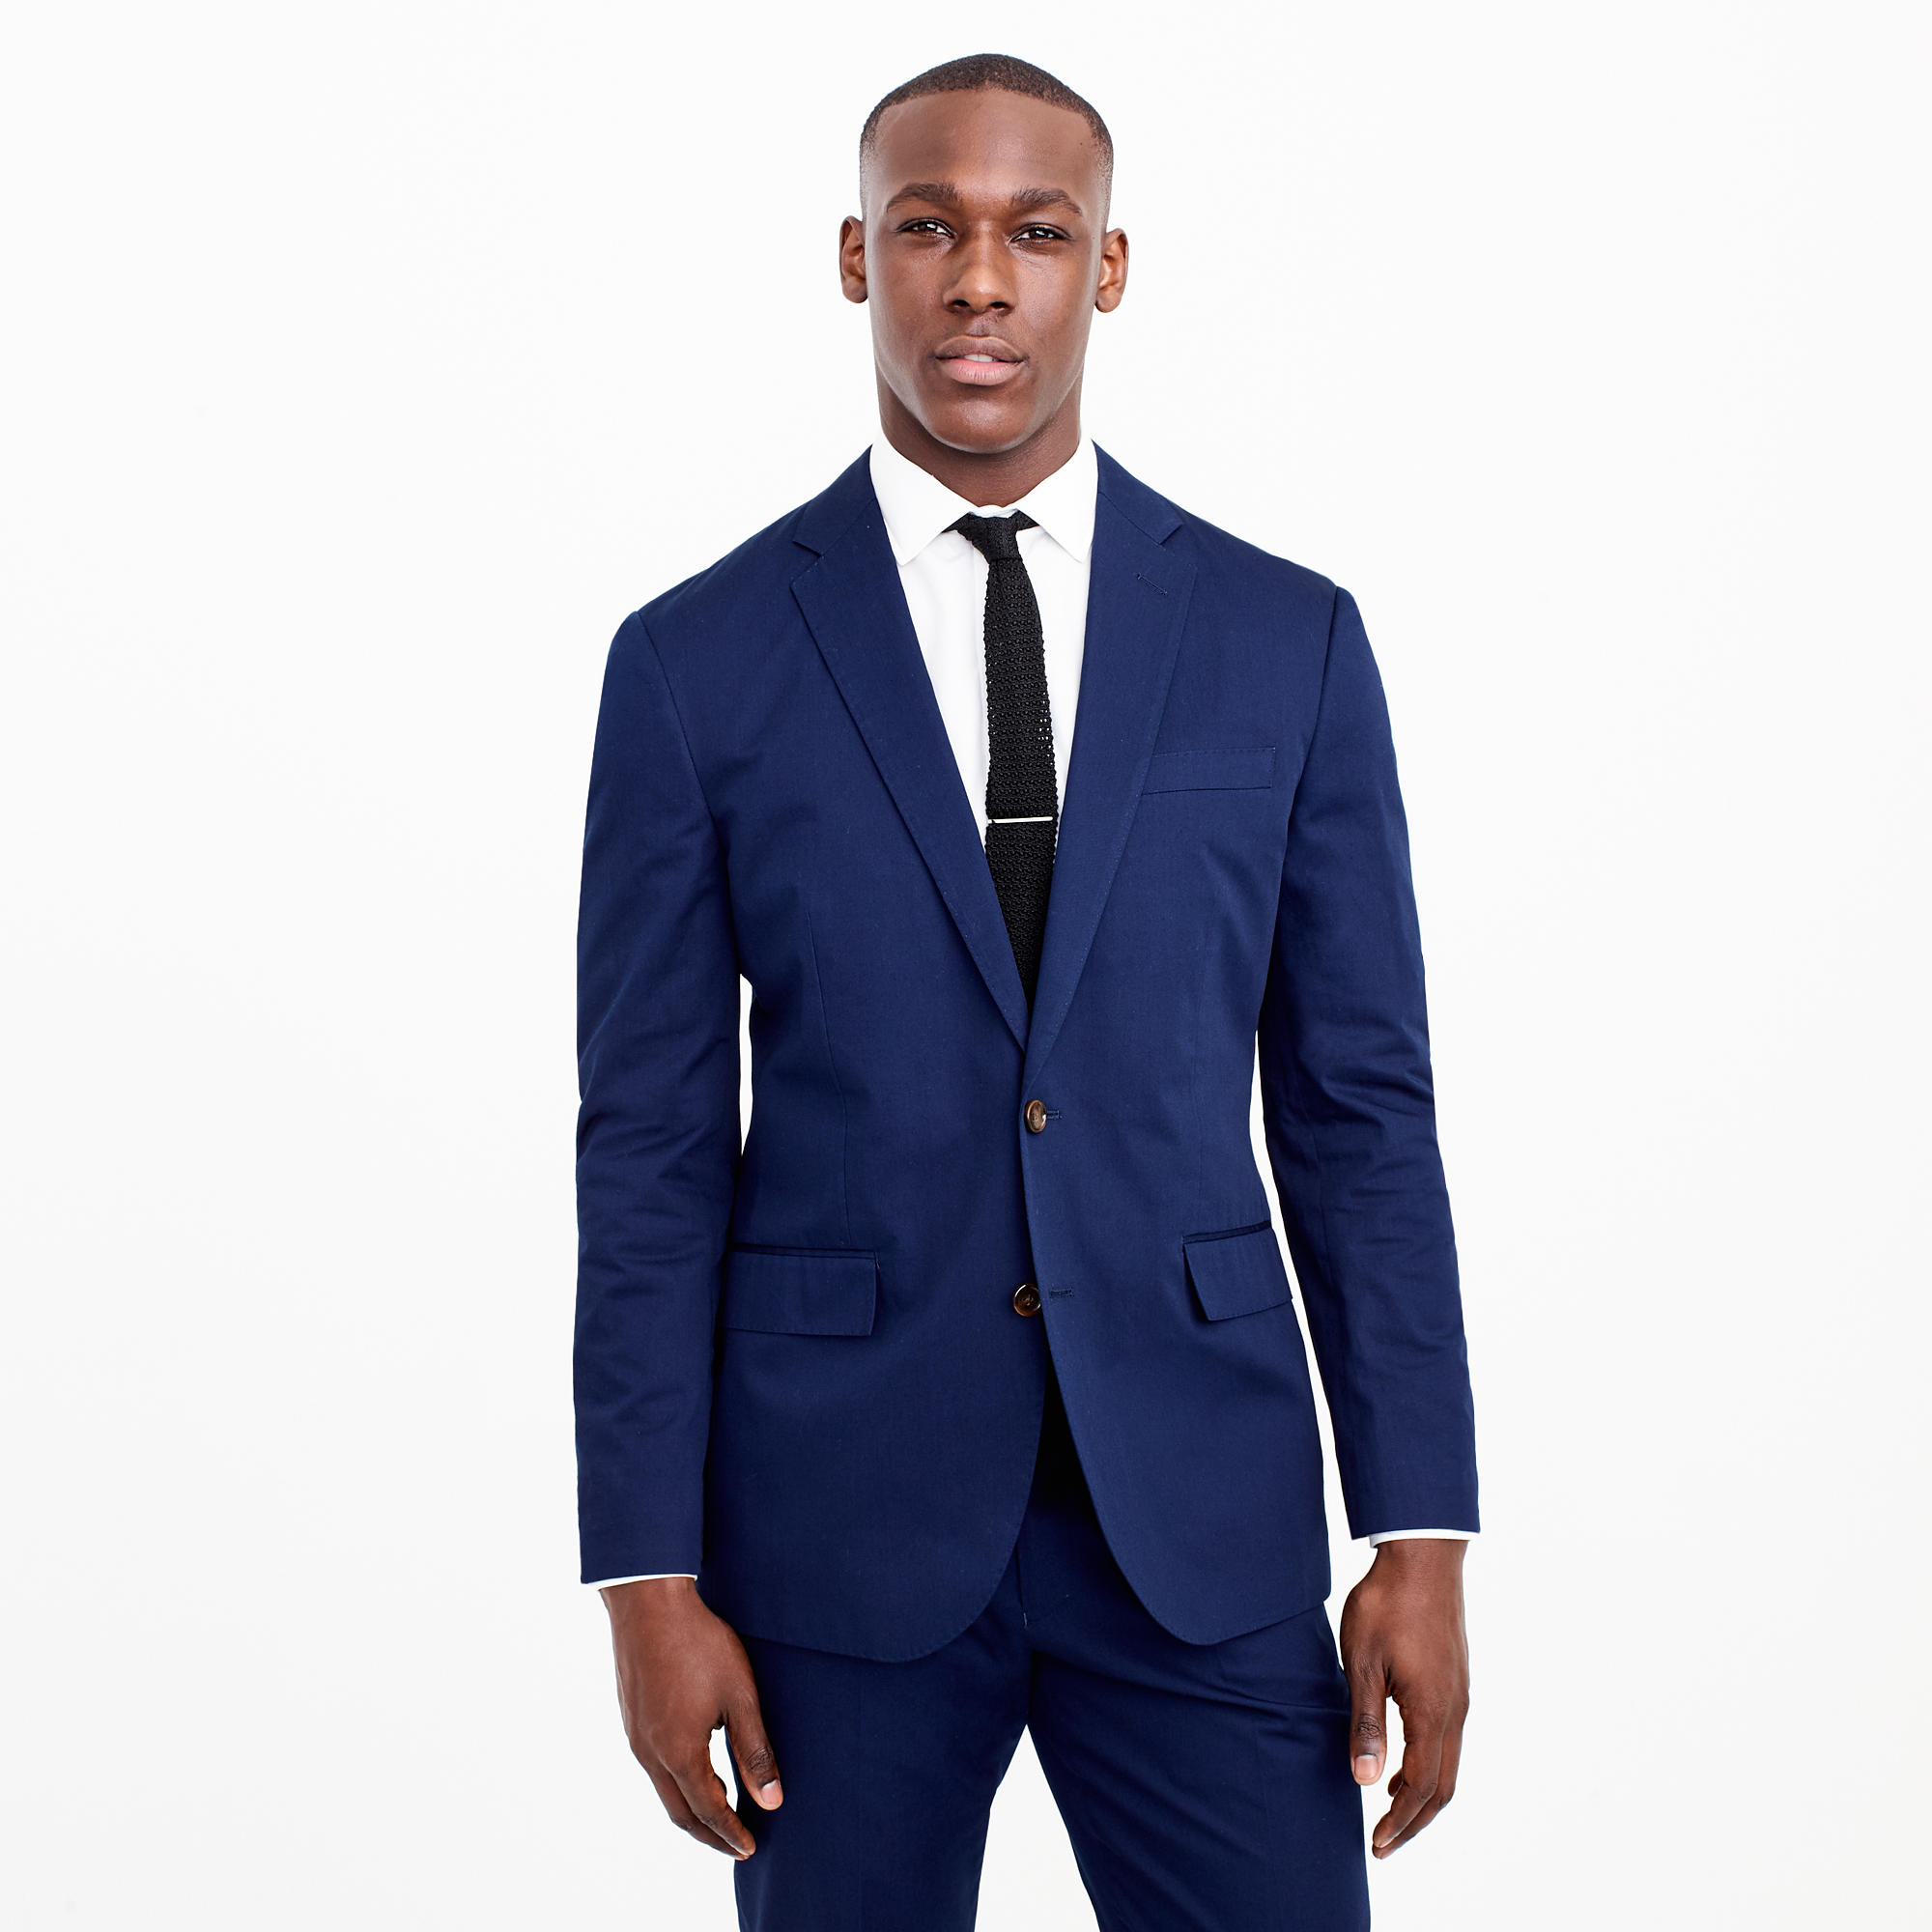 Suit jacket -  Crosby Suit Jacket In Italian Chino